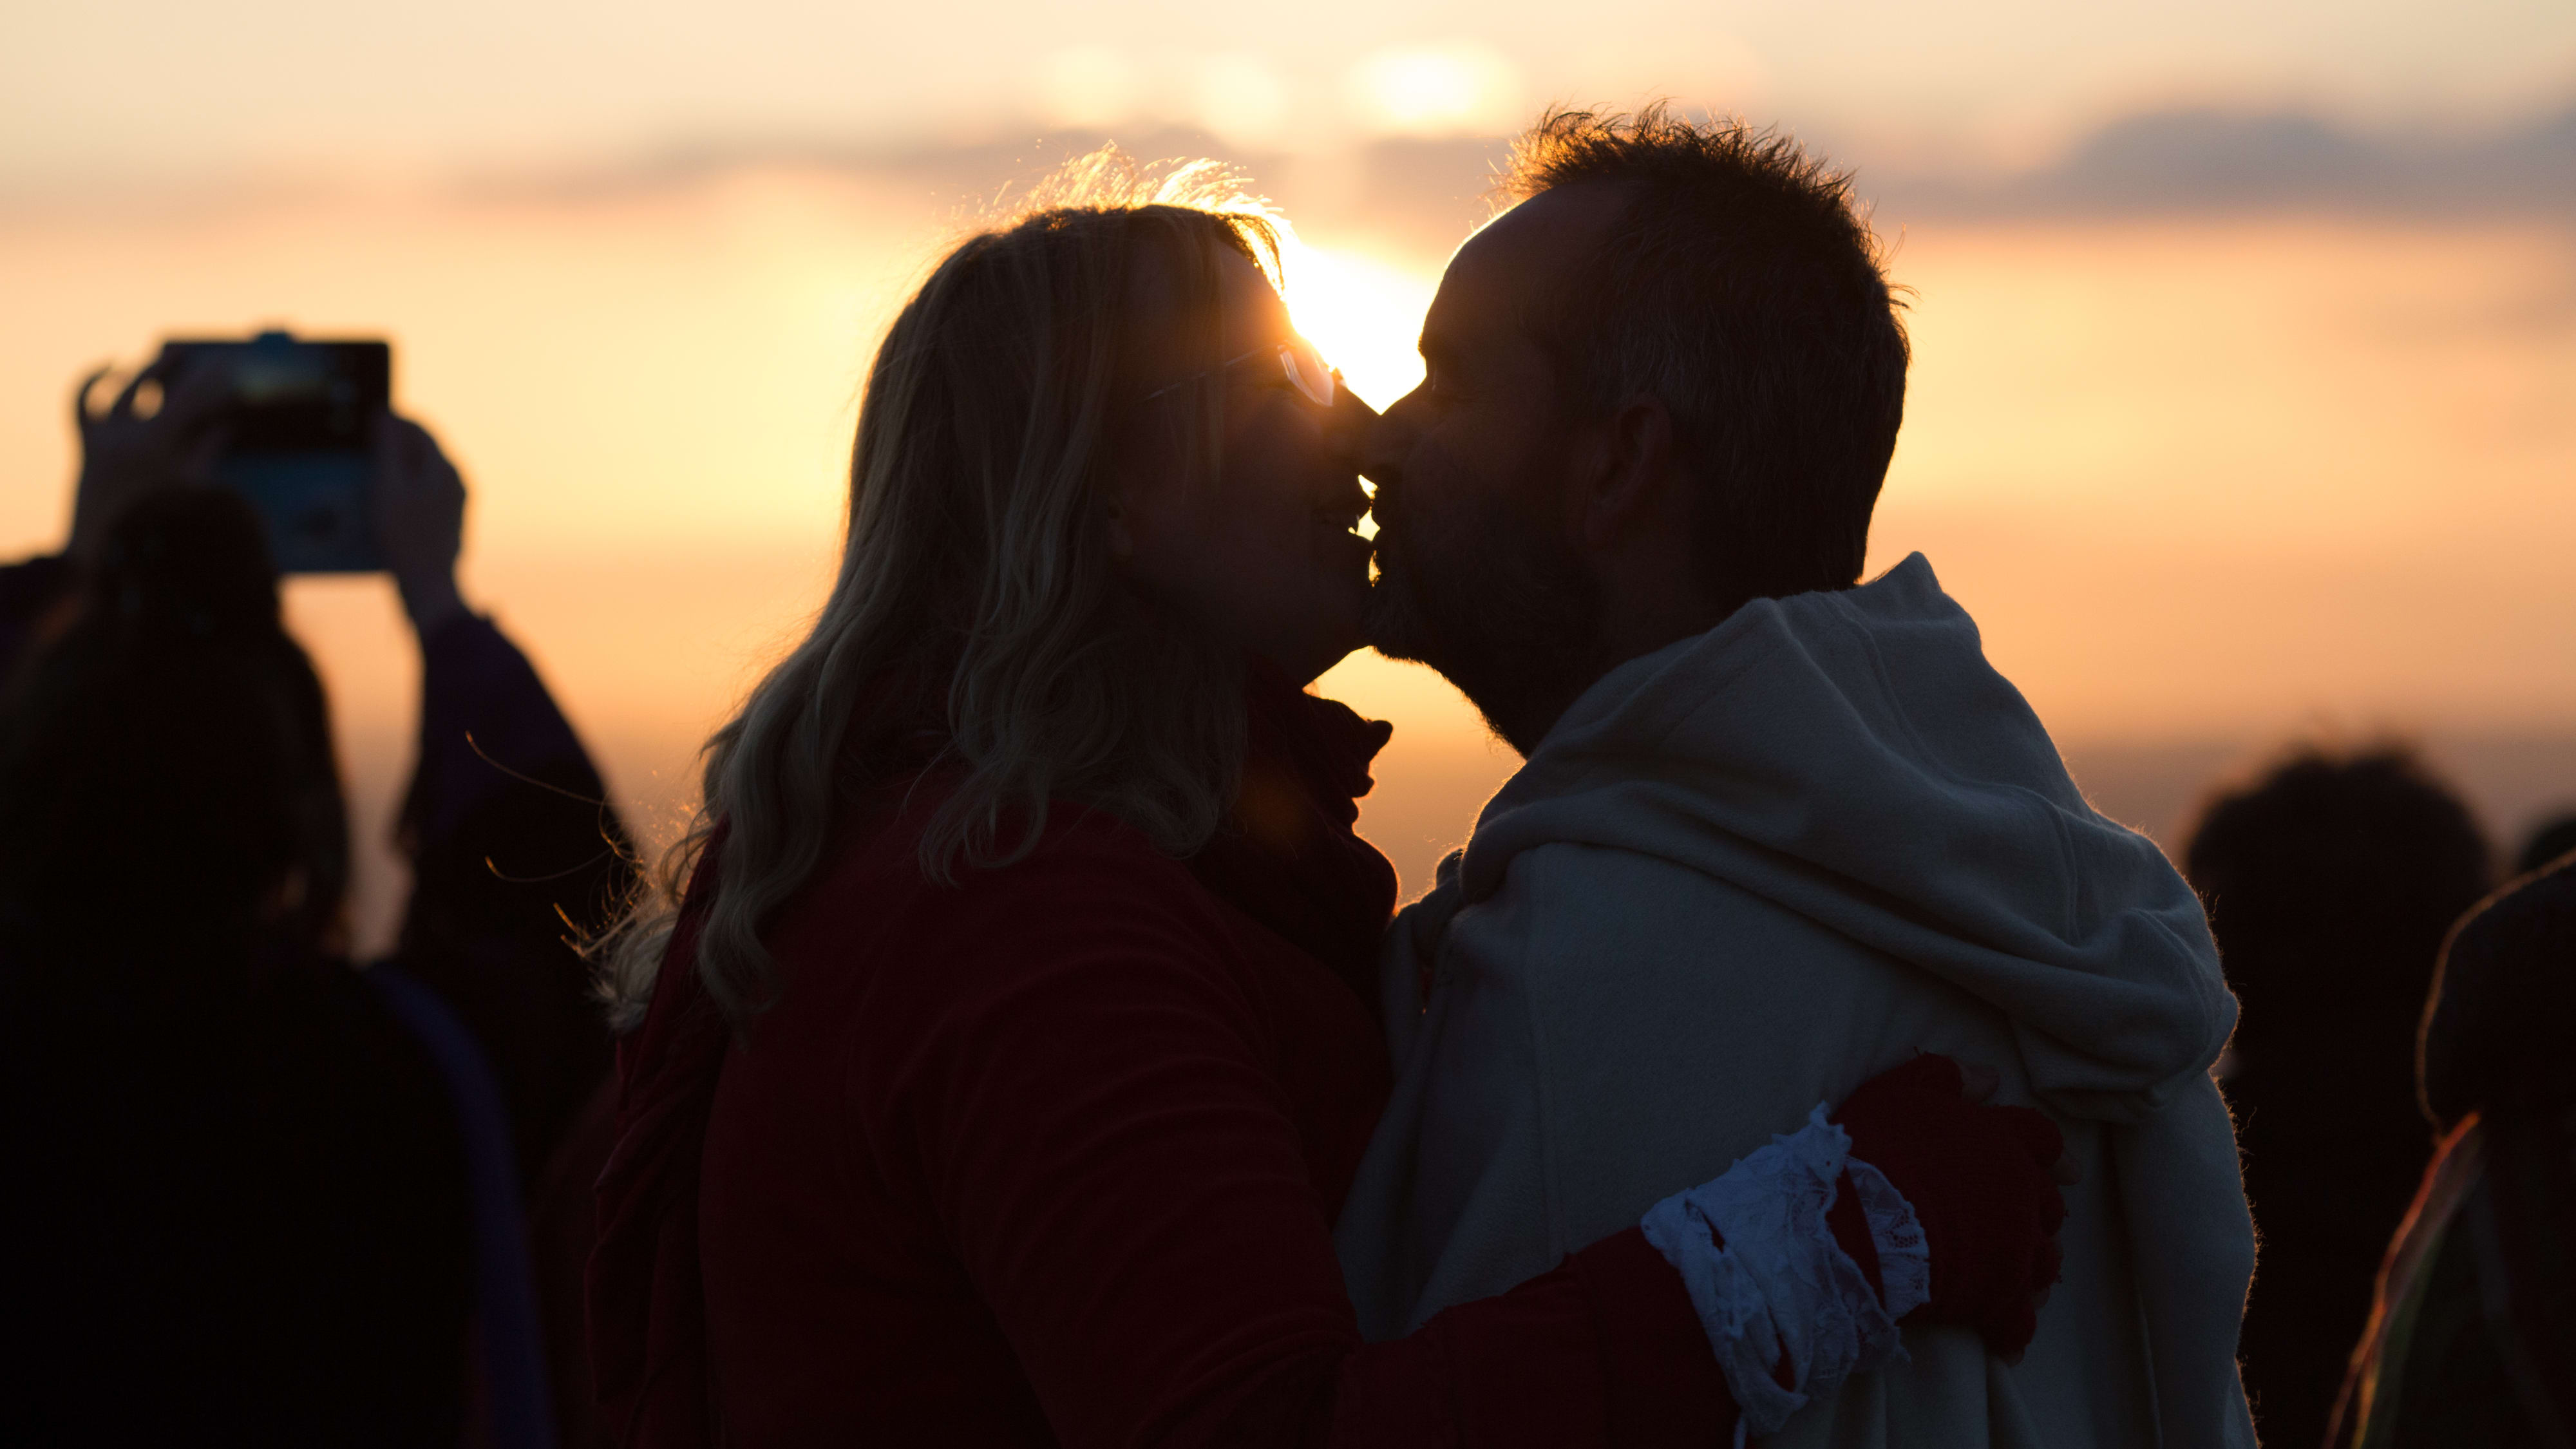 GLASTONBURY, ENGLAND - MAY 01: A couple kiss as people gather on Glastonbury Tor to watch the sun rise as they celebrate Beltane on May 1, 2018 in Somerset, England. Although more synonymous with International Workers' Day, or Labour Day, May Day or Beltane is celebrated by druids and pagans as the beginning of summer and the chance to celebrate the coming of the season of warmth and light. Other traditional English May Day rites and celebrations include Morris dancing and the crowning of a May Queen with celebrations involving a Maypole.  (Photo by Matt Cardy/Getty Images)